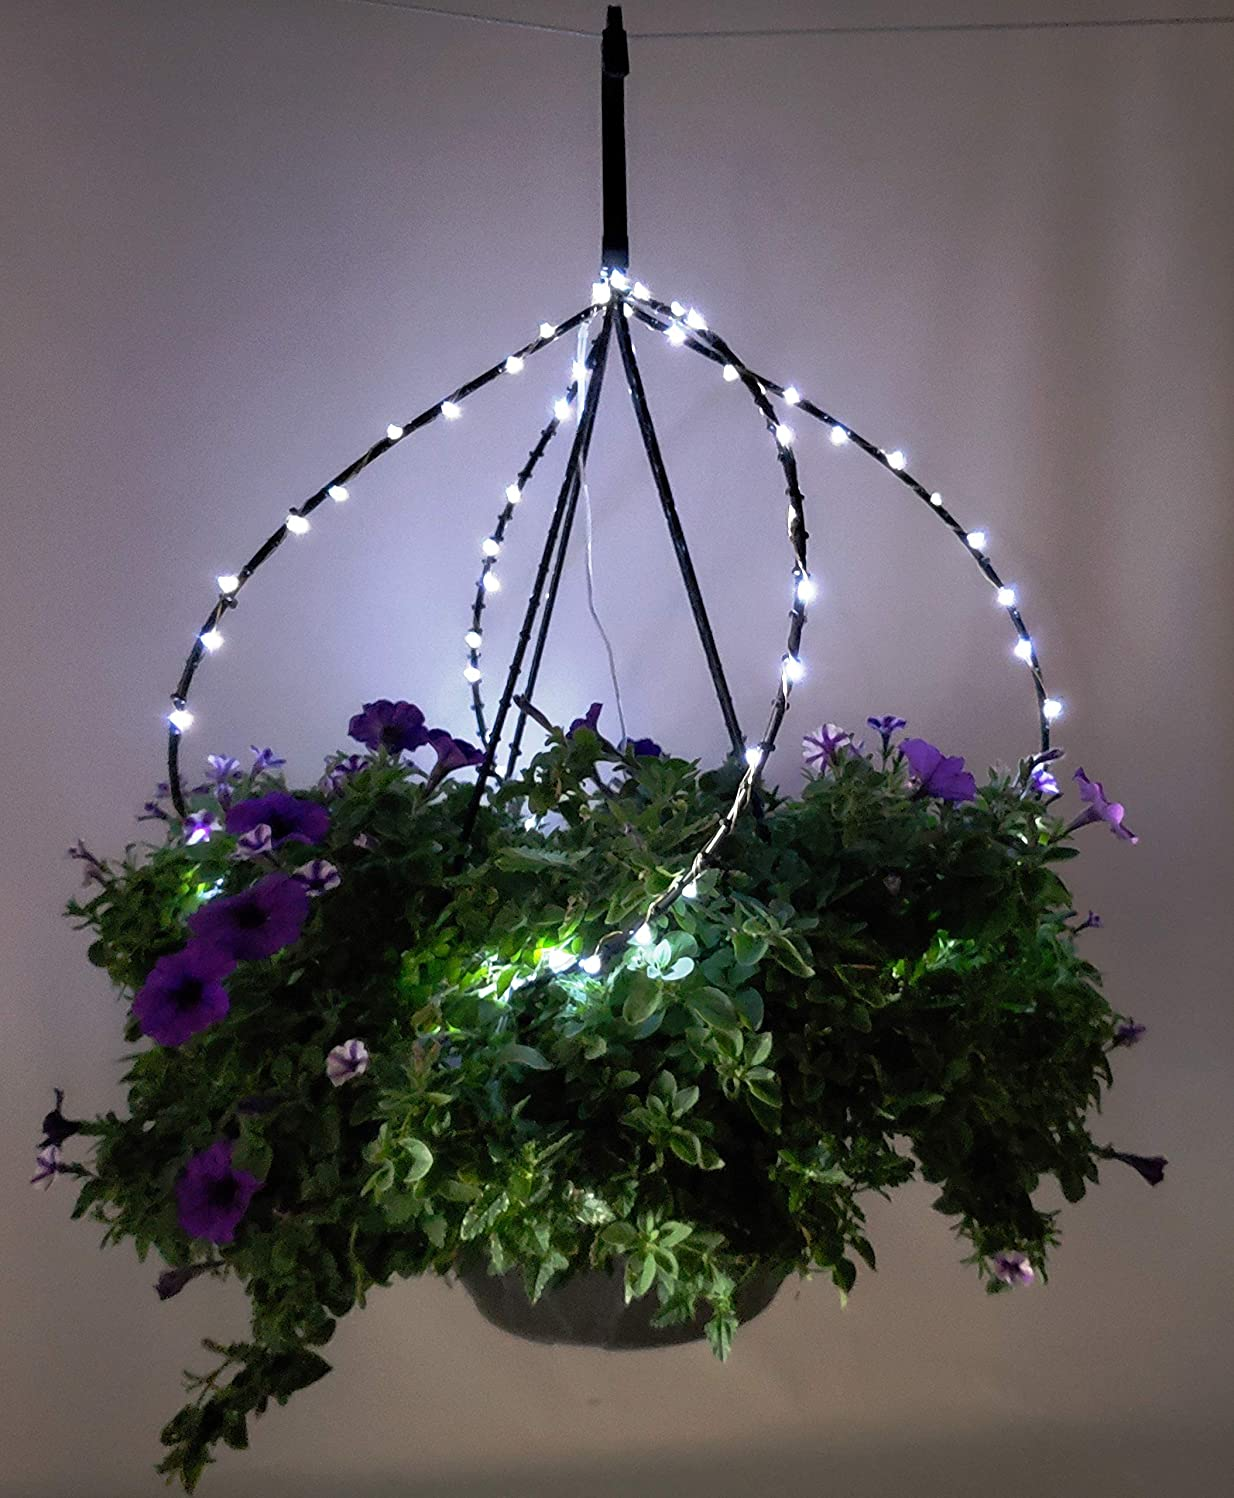 2 Pack Scroll Trellis Decorative Outdoor Solar Lights Combination All-in-One Hanger Plus a Trellis for 12 Inch Wide 4 Strand Hanging Baskets Replacement Plastic Hanger (2, Bright White Solar Lights)